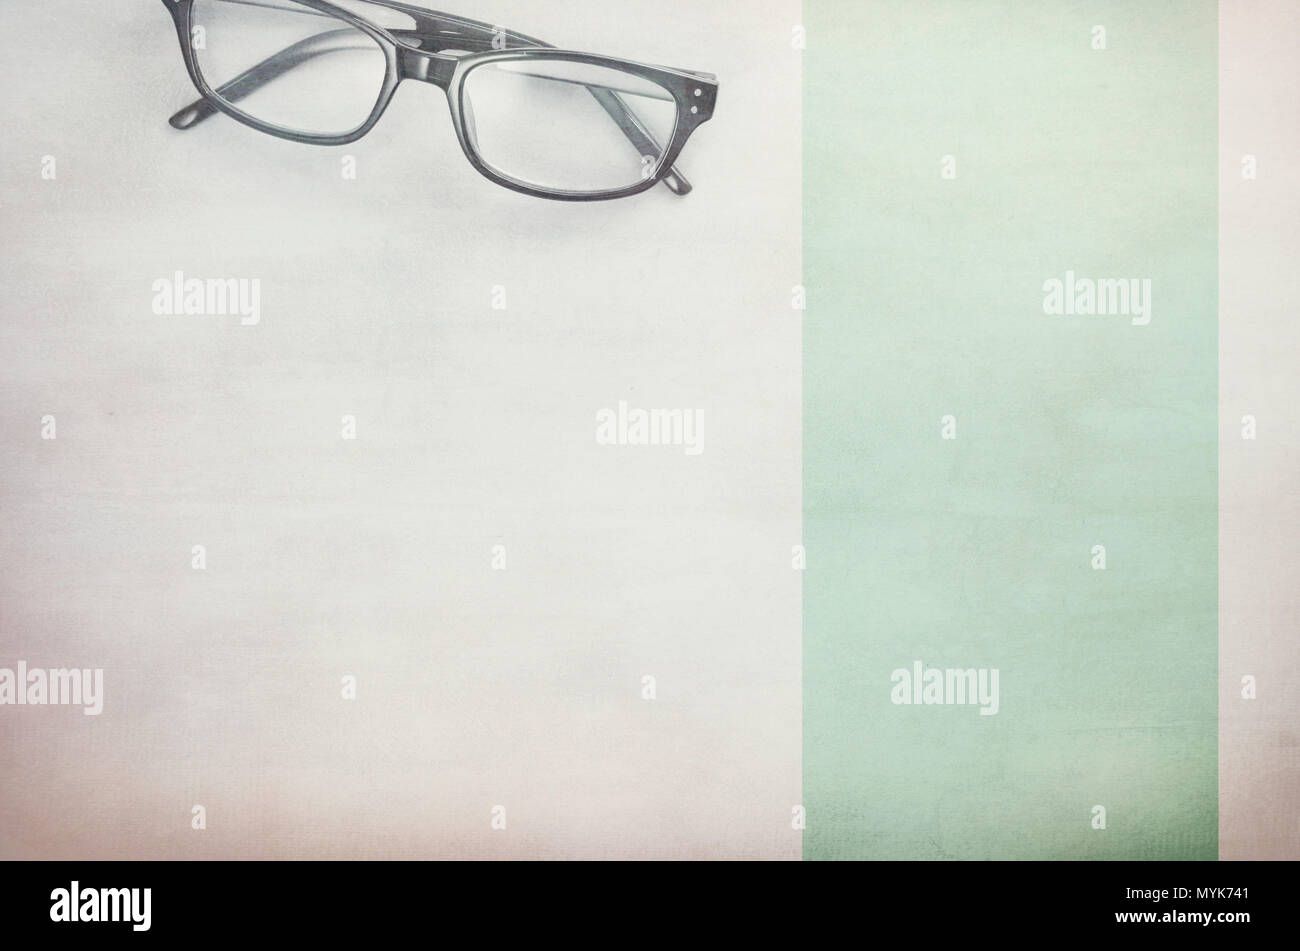 pair of framed eyeglasses on a light textured surface - directly above - Stock Image